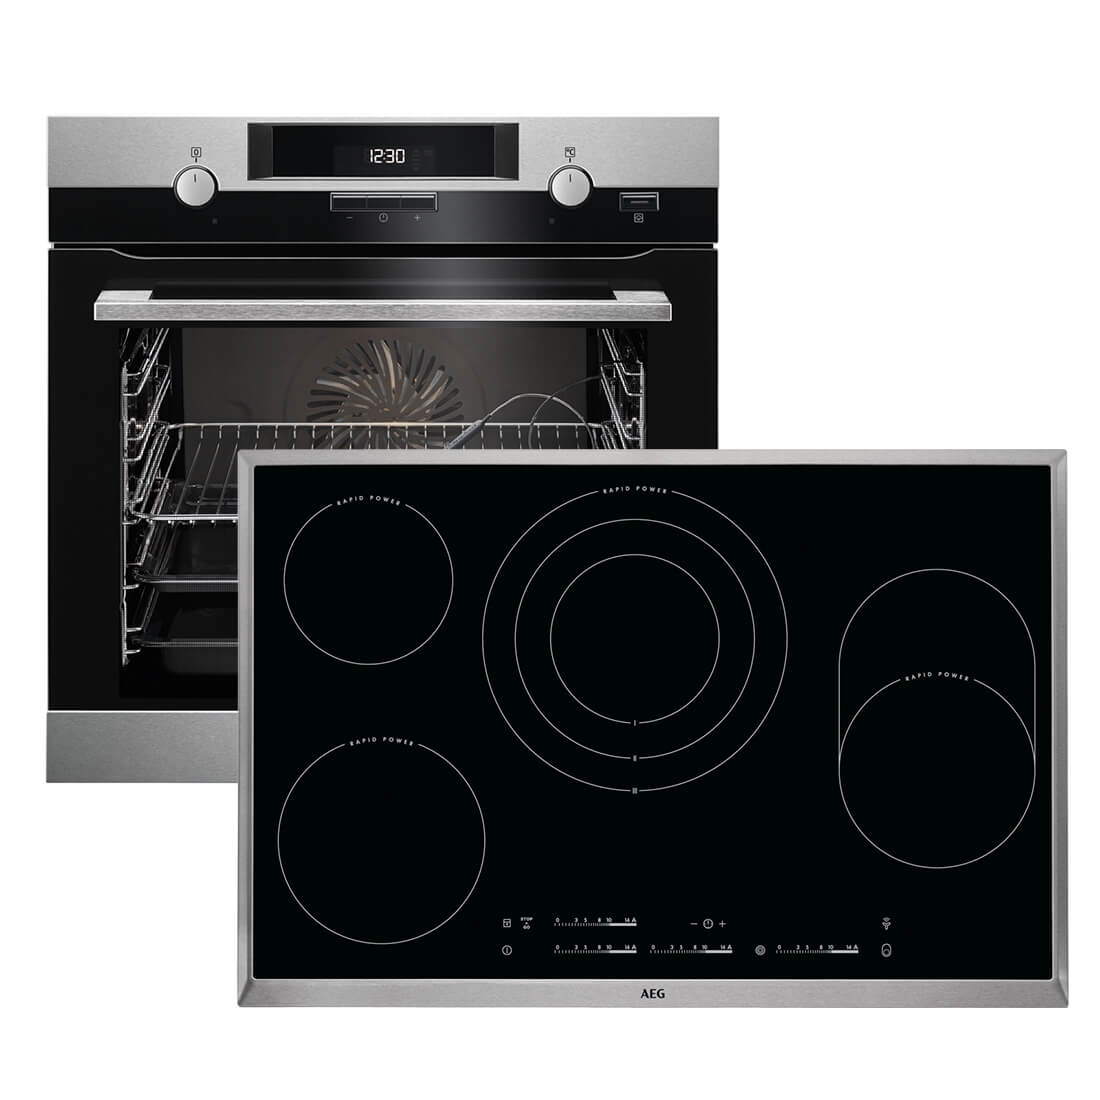 aeg bck453 backofen set bck452210m backofen hk854870x. Black Bedroom Furniture Sets. Home Design Ideas